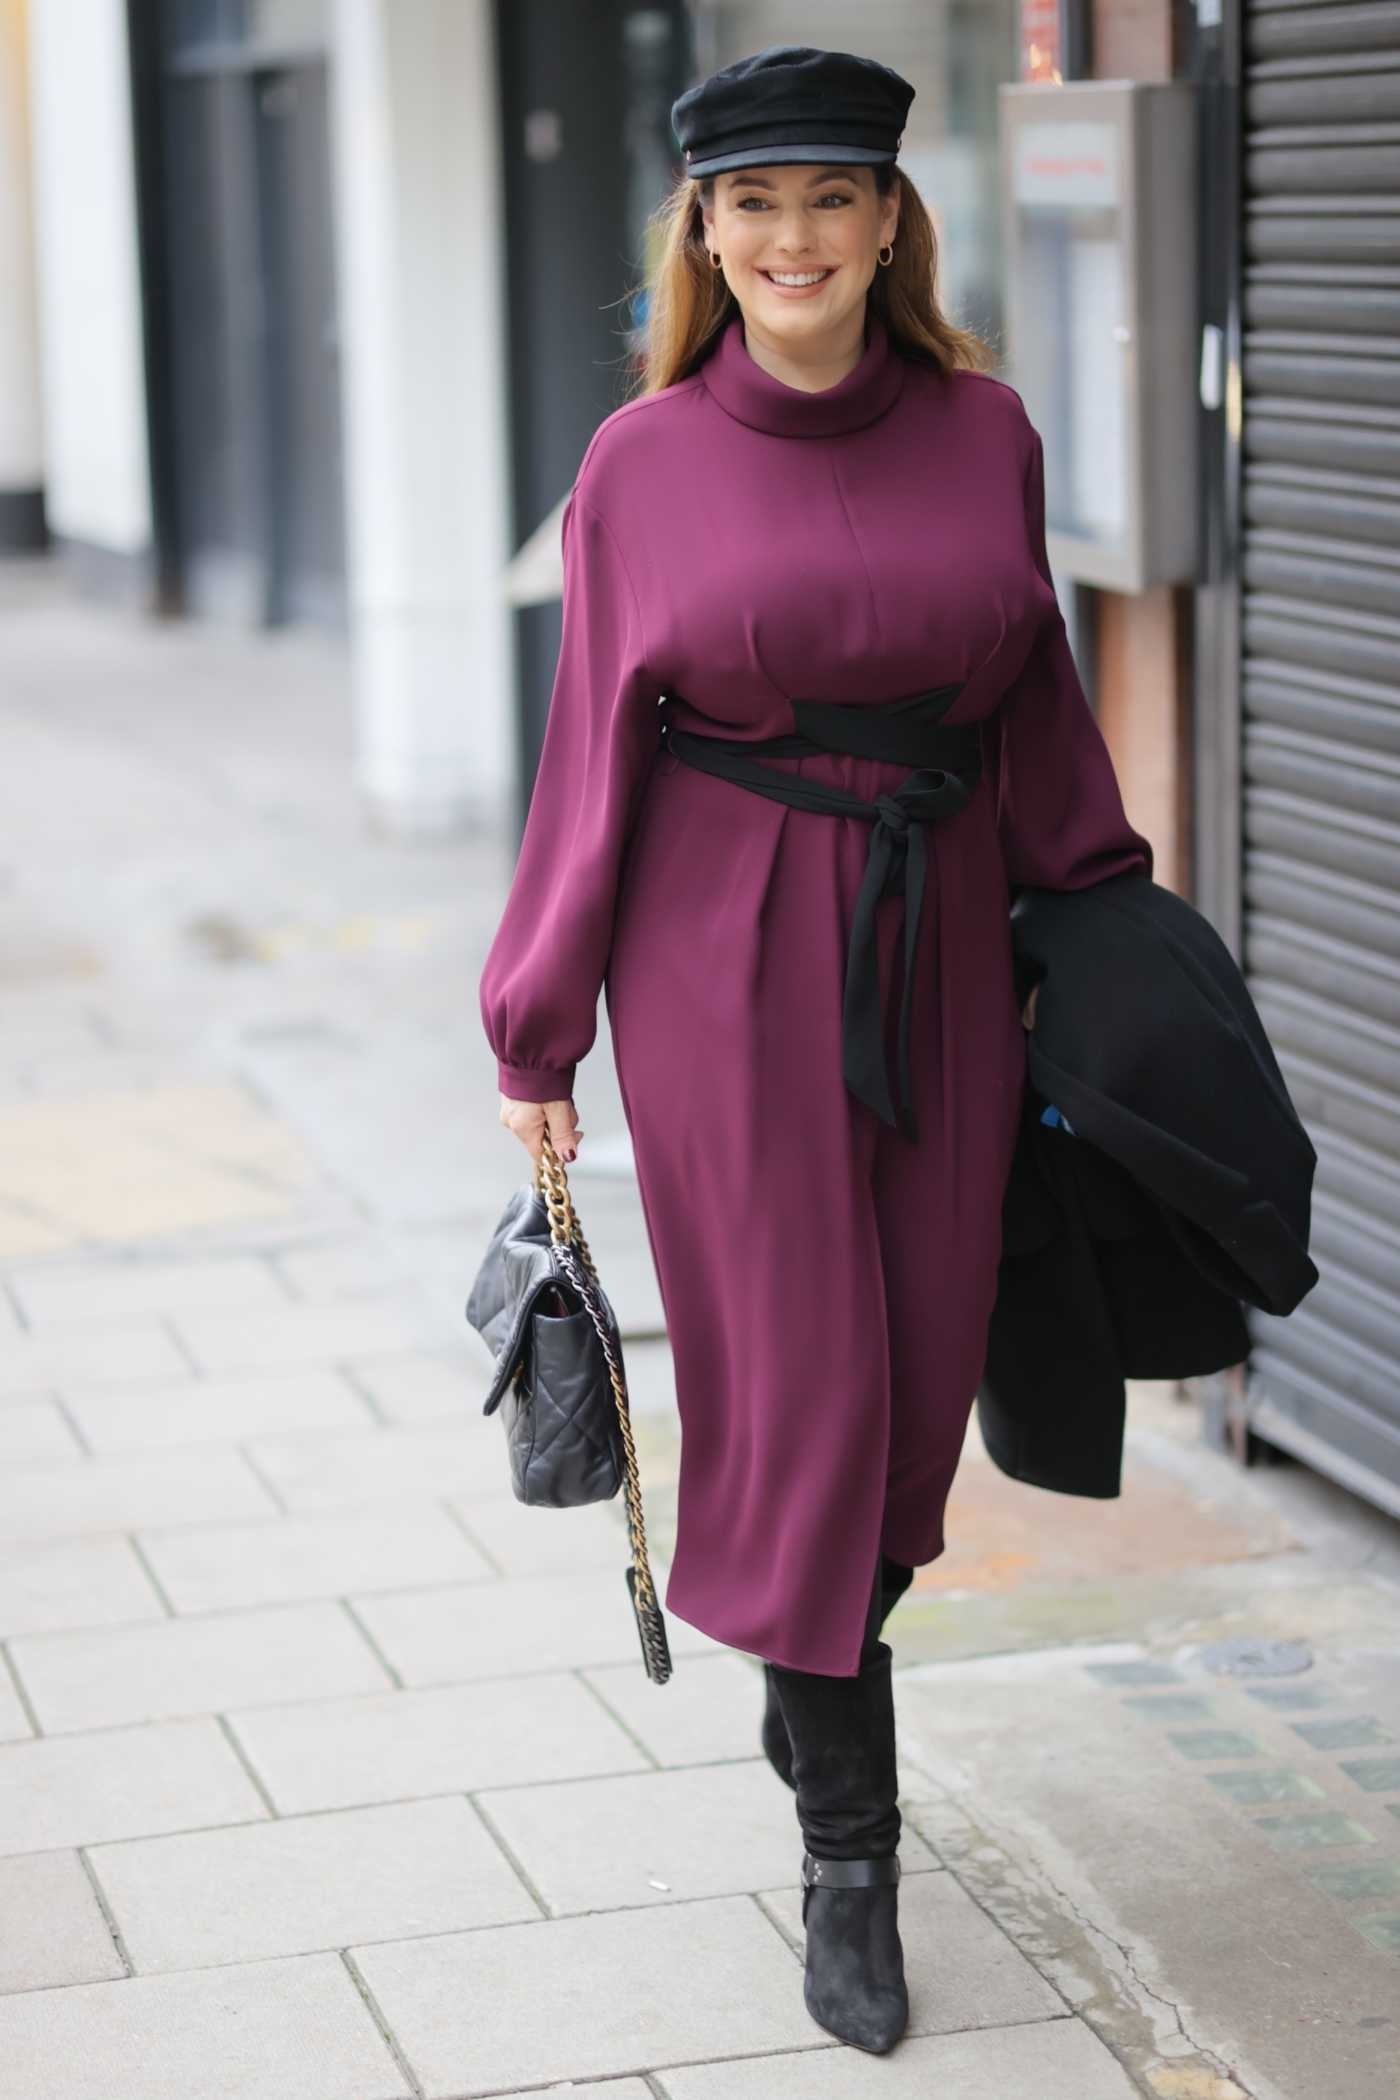 Kelly Brook in a Stylish Lilac Dress Arrives at the Heart Radio Studios in London 02/03/2021